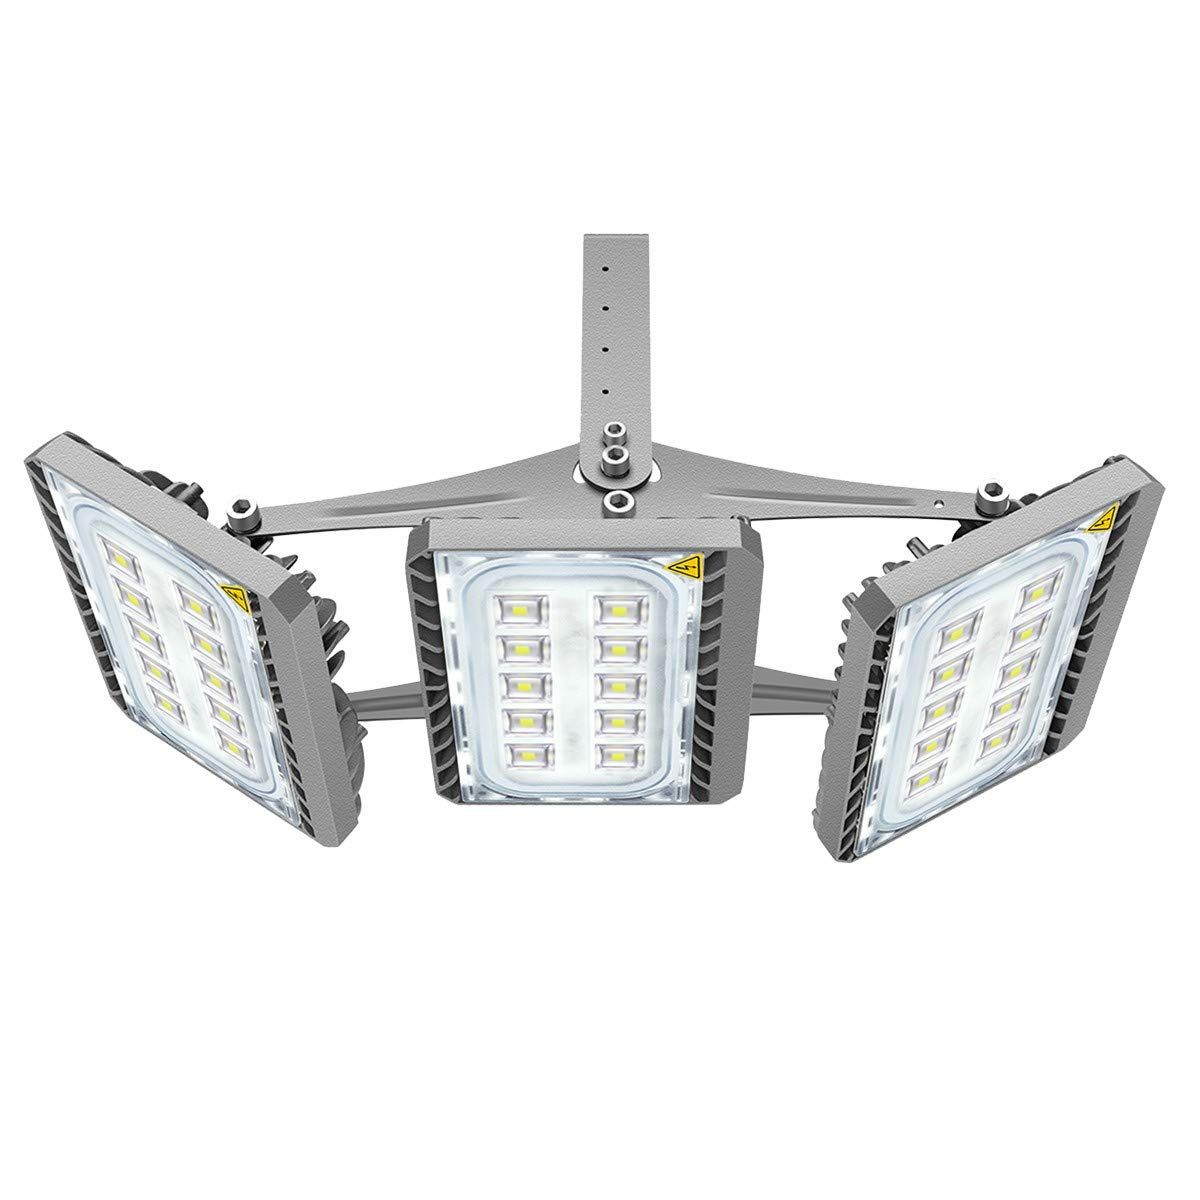 Super Simple Ideas For People Who Hate Yard Work: LED Flood Light Outdoor, STASUN 150W 13500lm LED Security